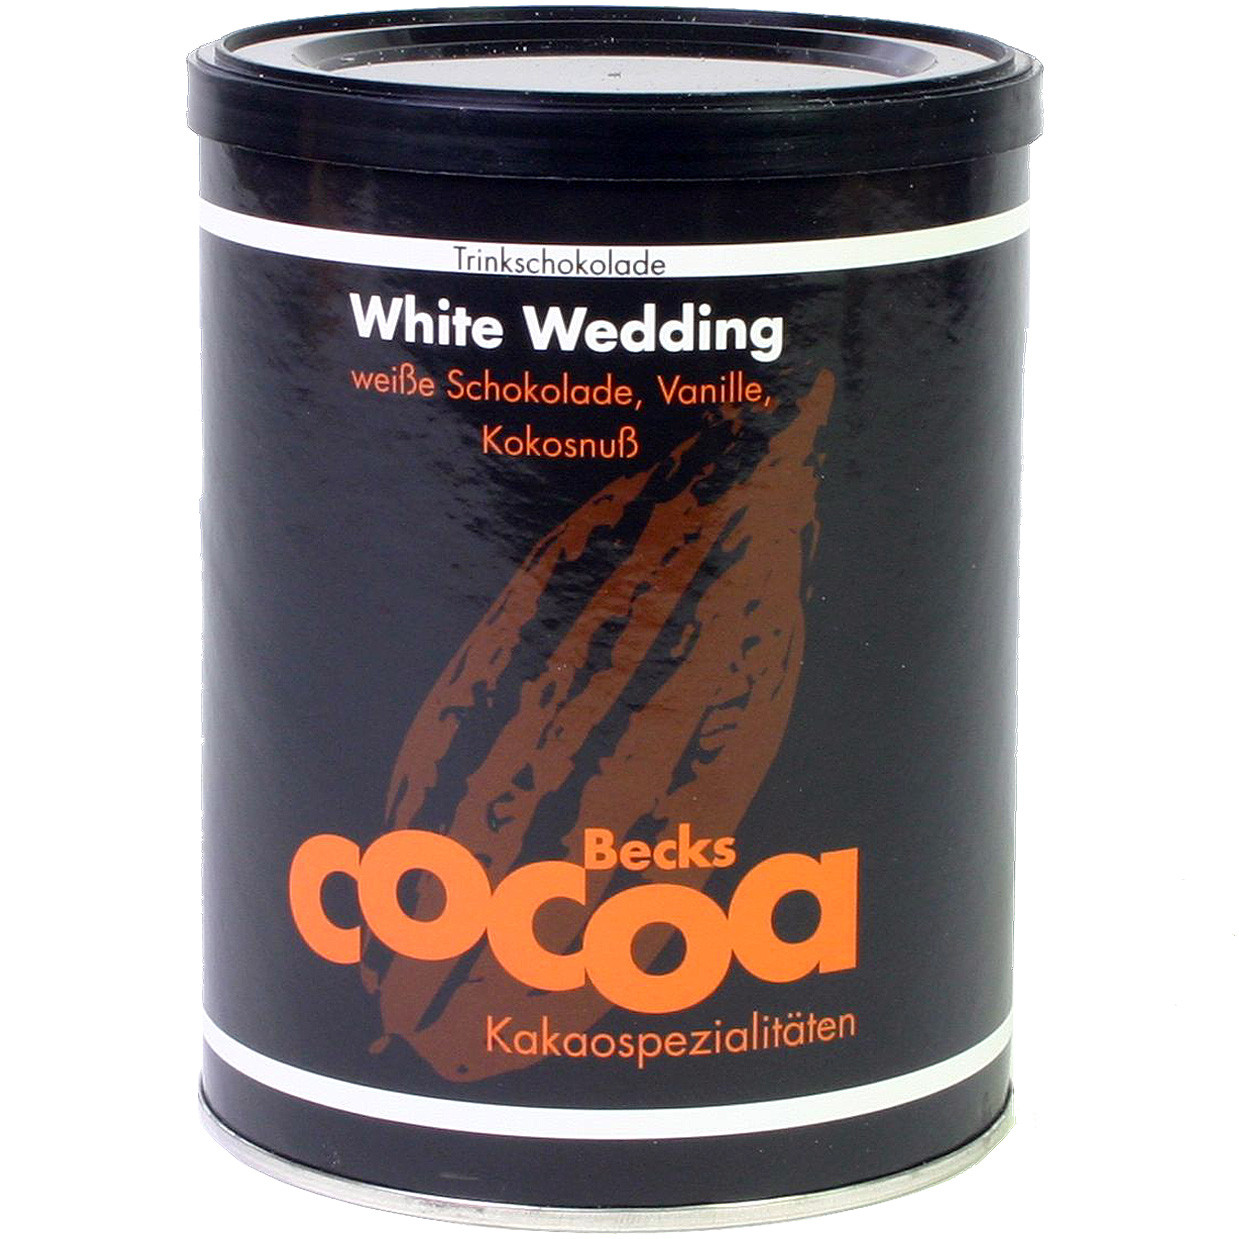 Becks Cocoa, White Wedding, Trinkschokolade mit Kokosnuss, Vanille, Trinkschokolade - Hot Chocolate, gluten free chocolate, Germany, german chocolate, Chocolate with coconut - Chocolats-De-Luxe